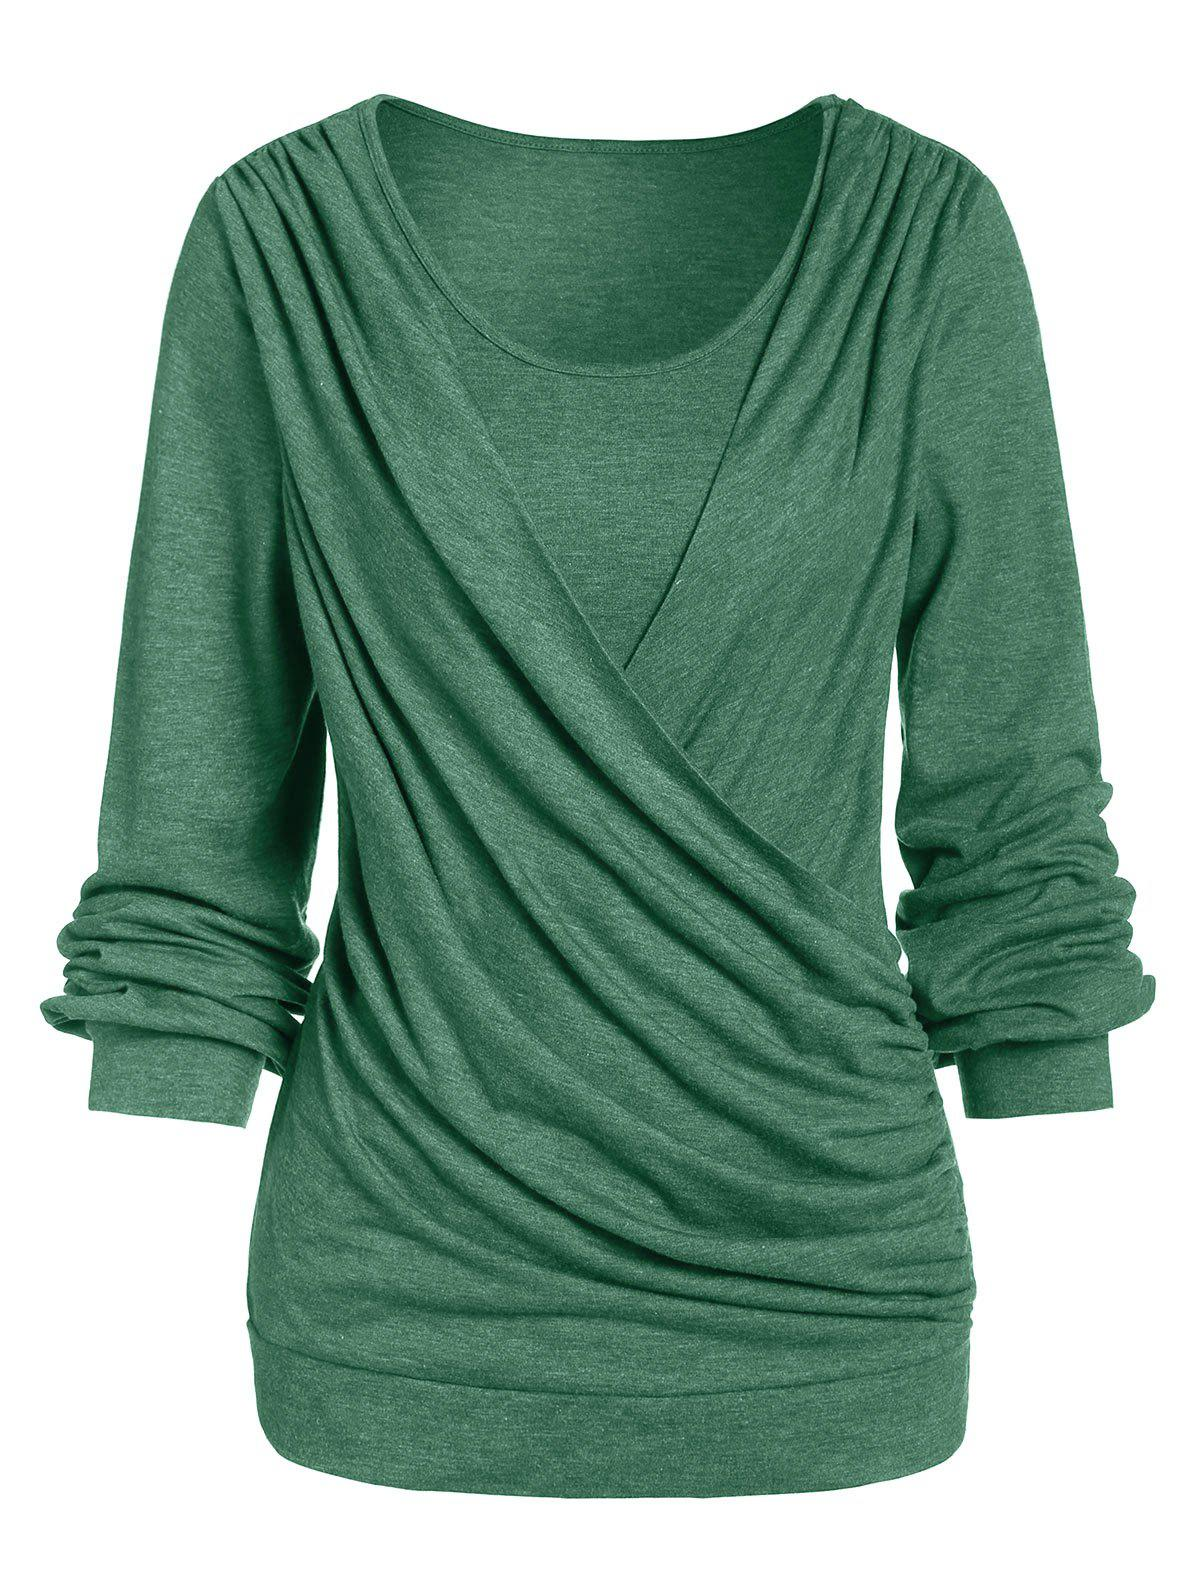 Long Sleeve Round Collar Marled T Shirt - SEA TURTLE GREEN S